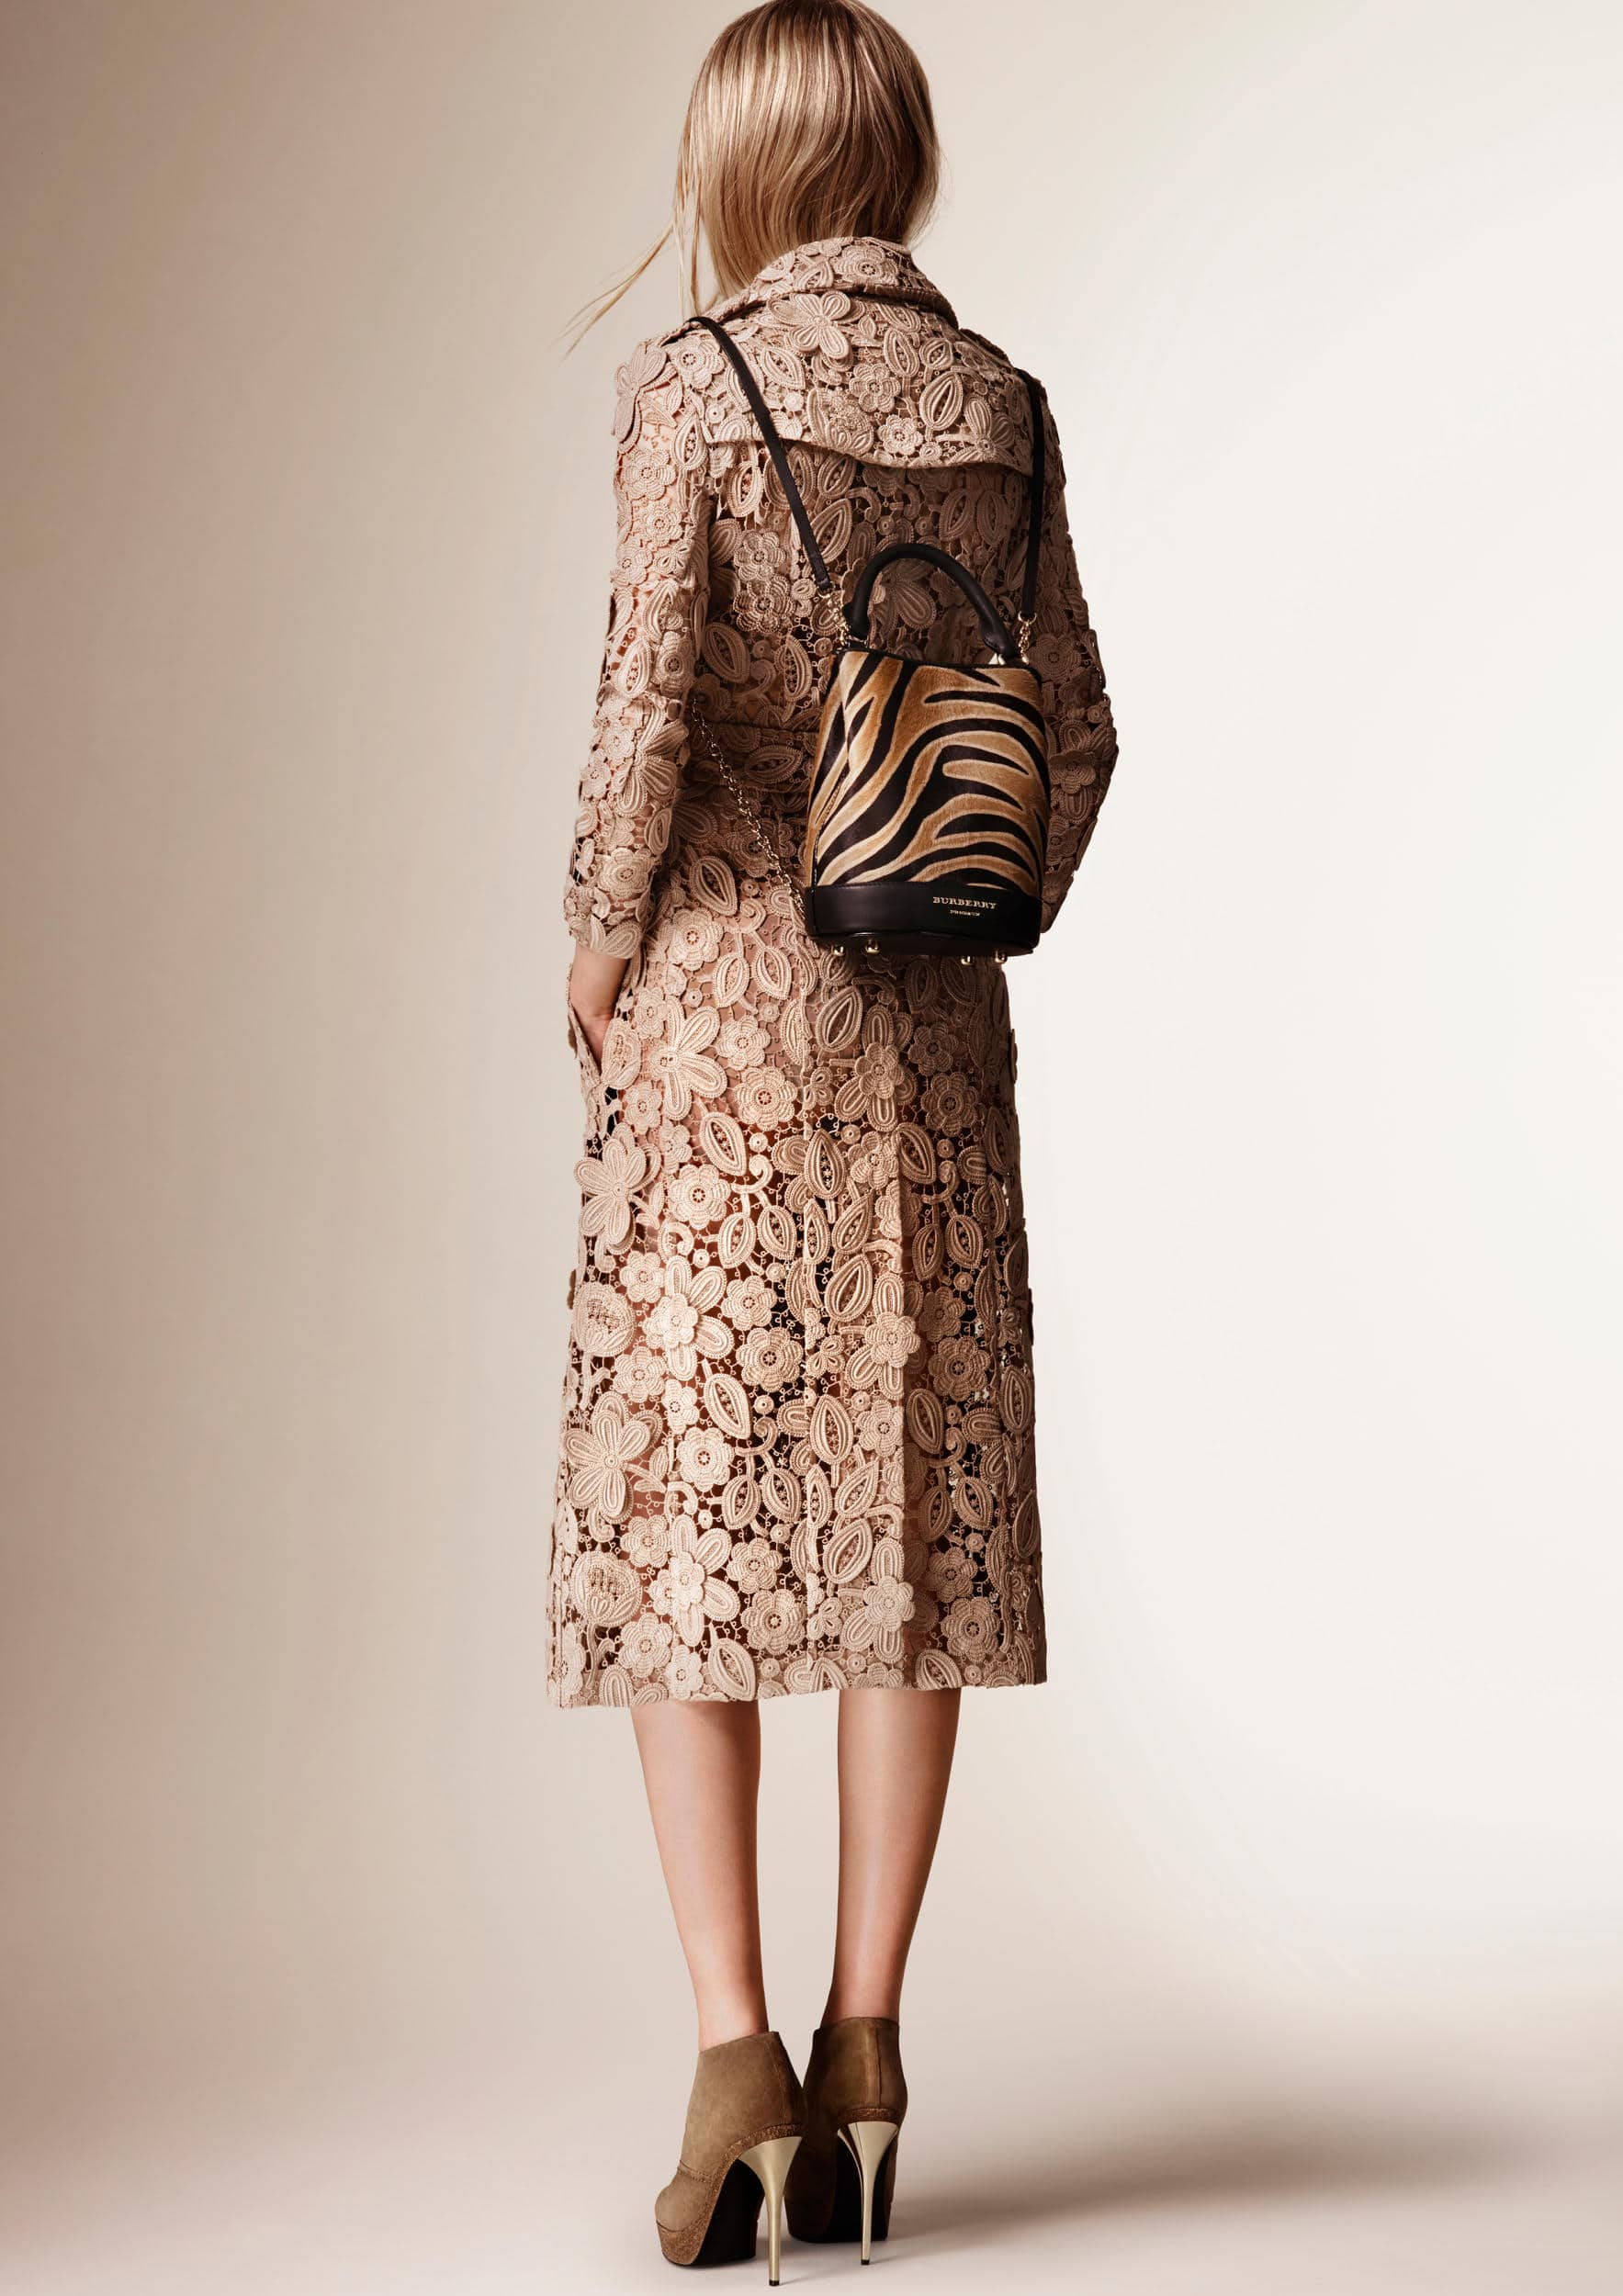 burberry-resort-collection-2016-16